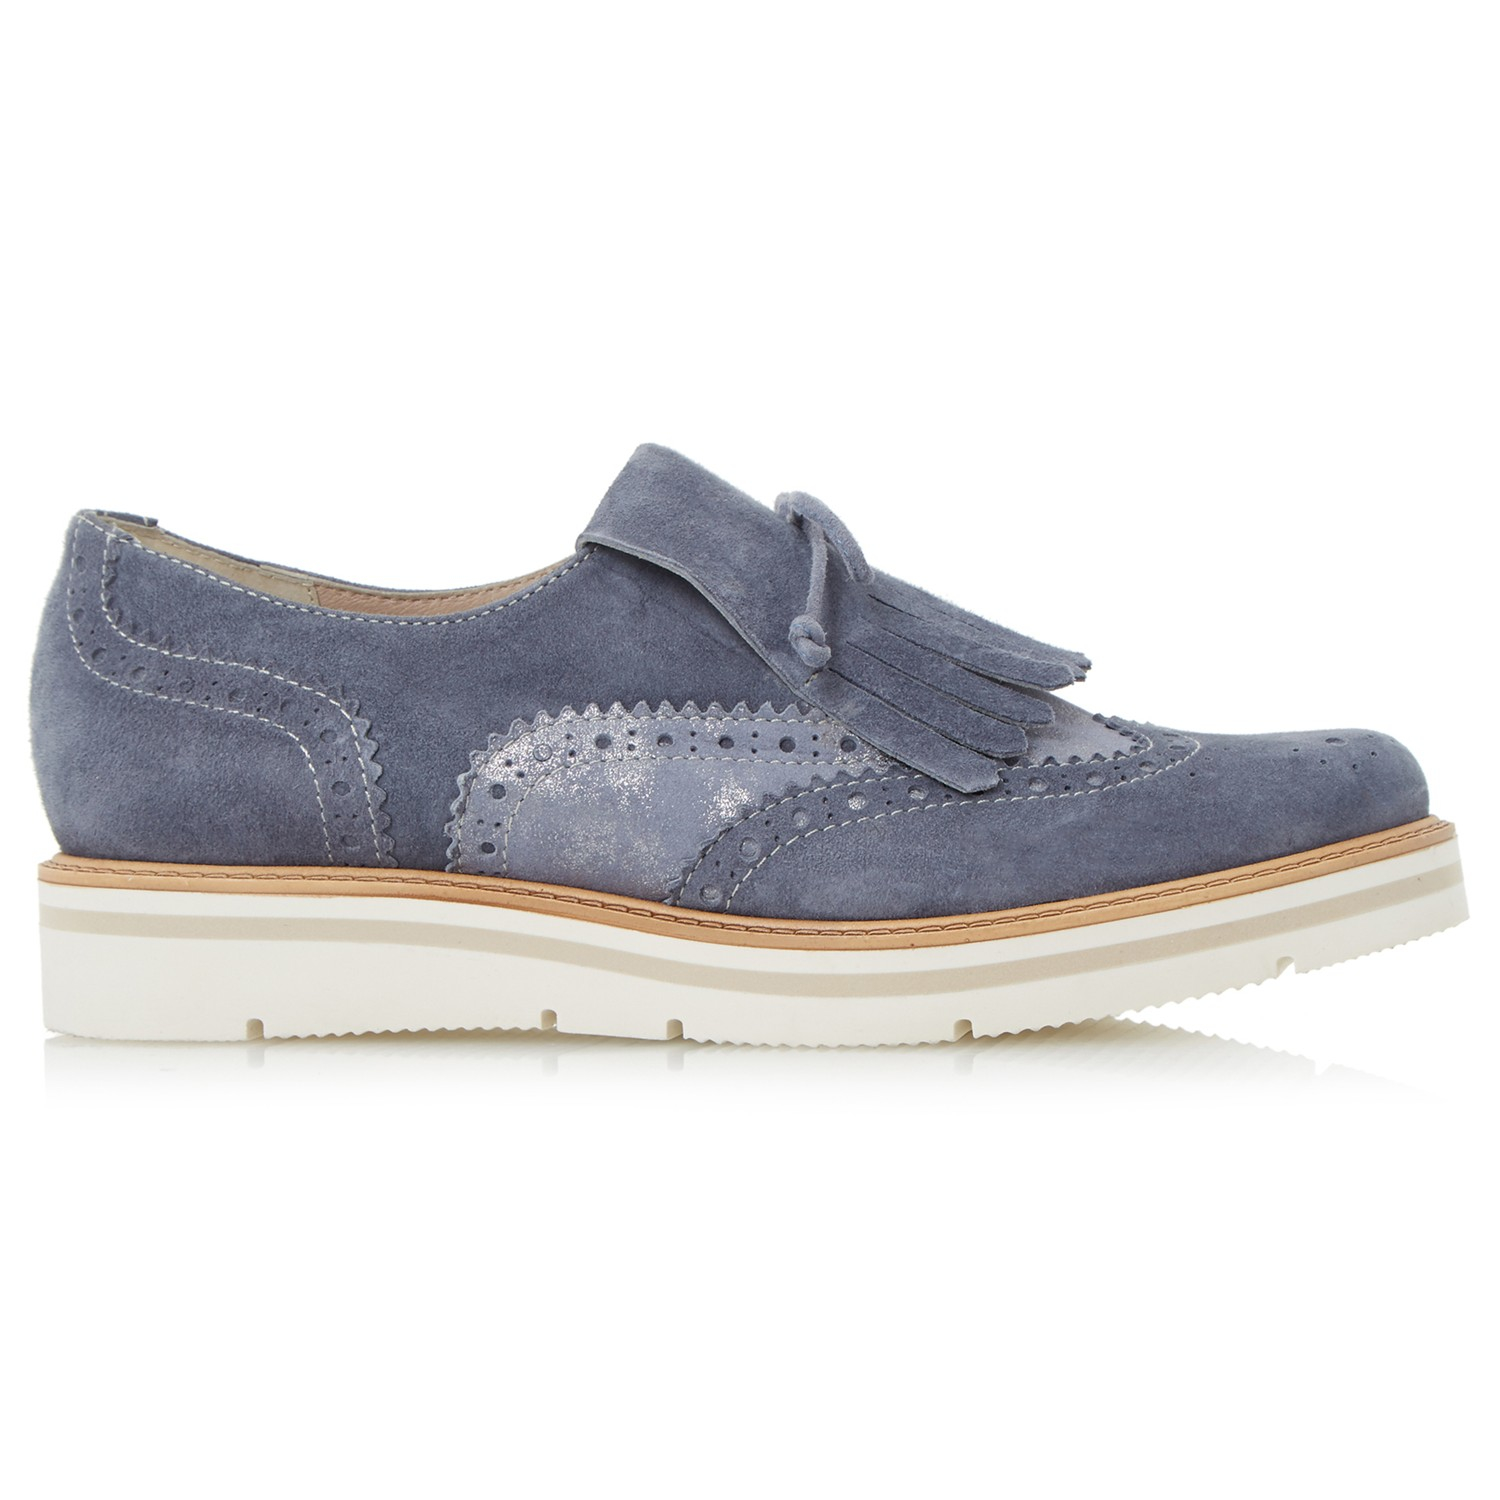 Dune Gravitie Fringed Loafers